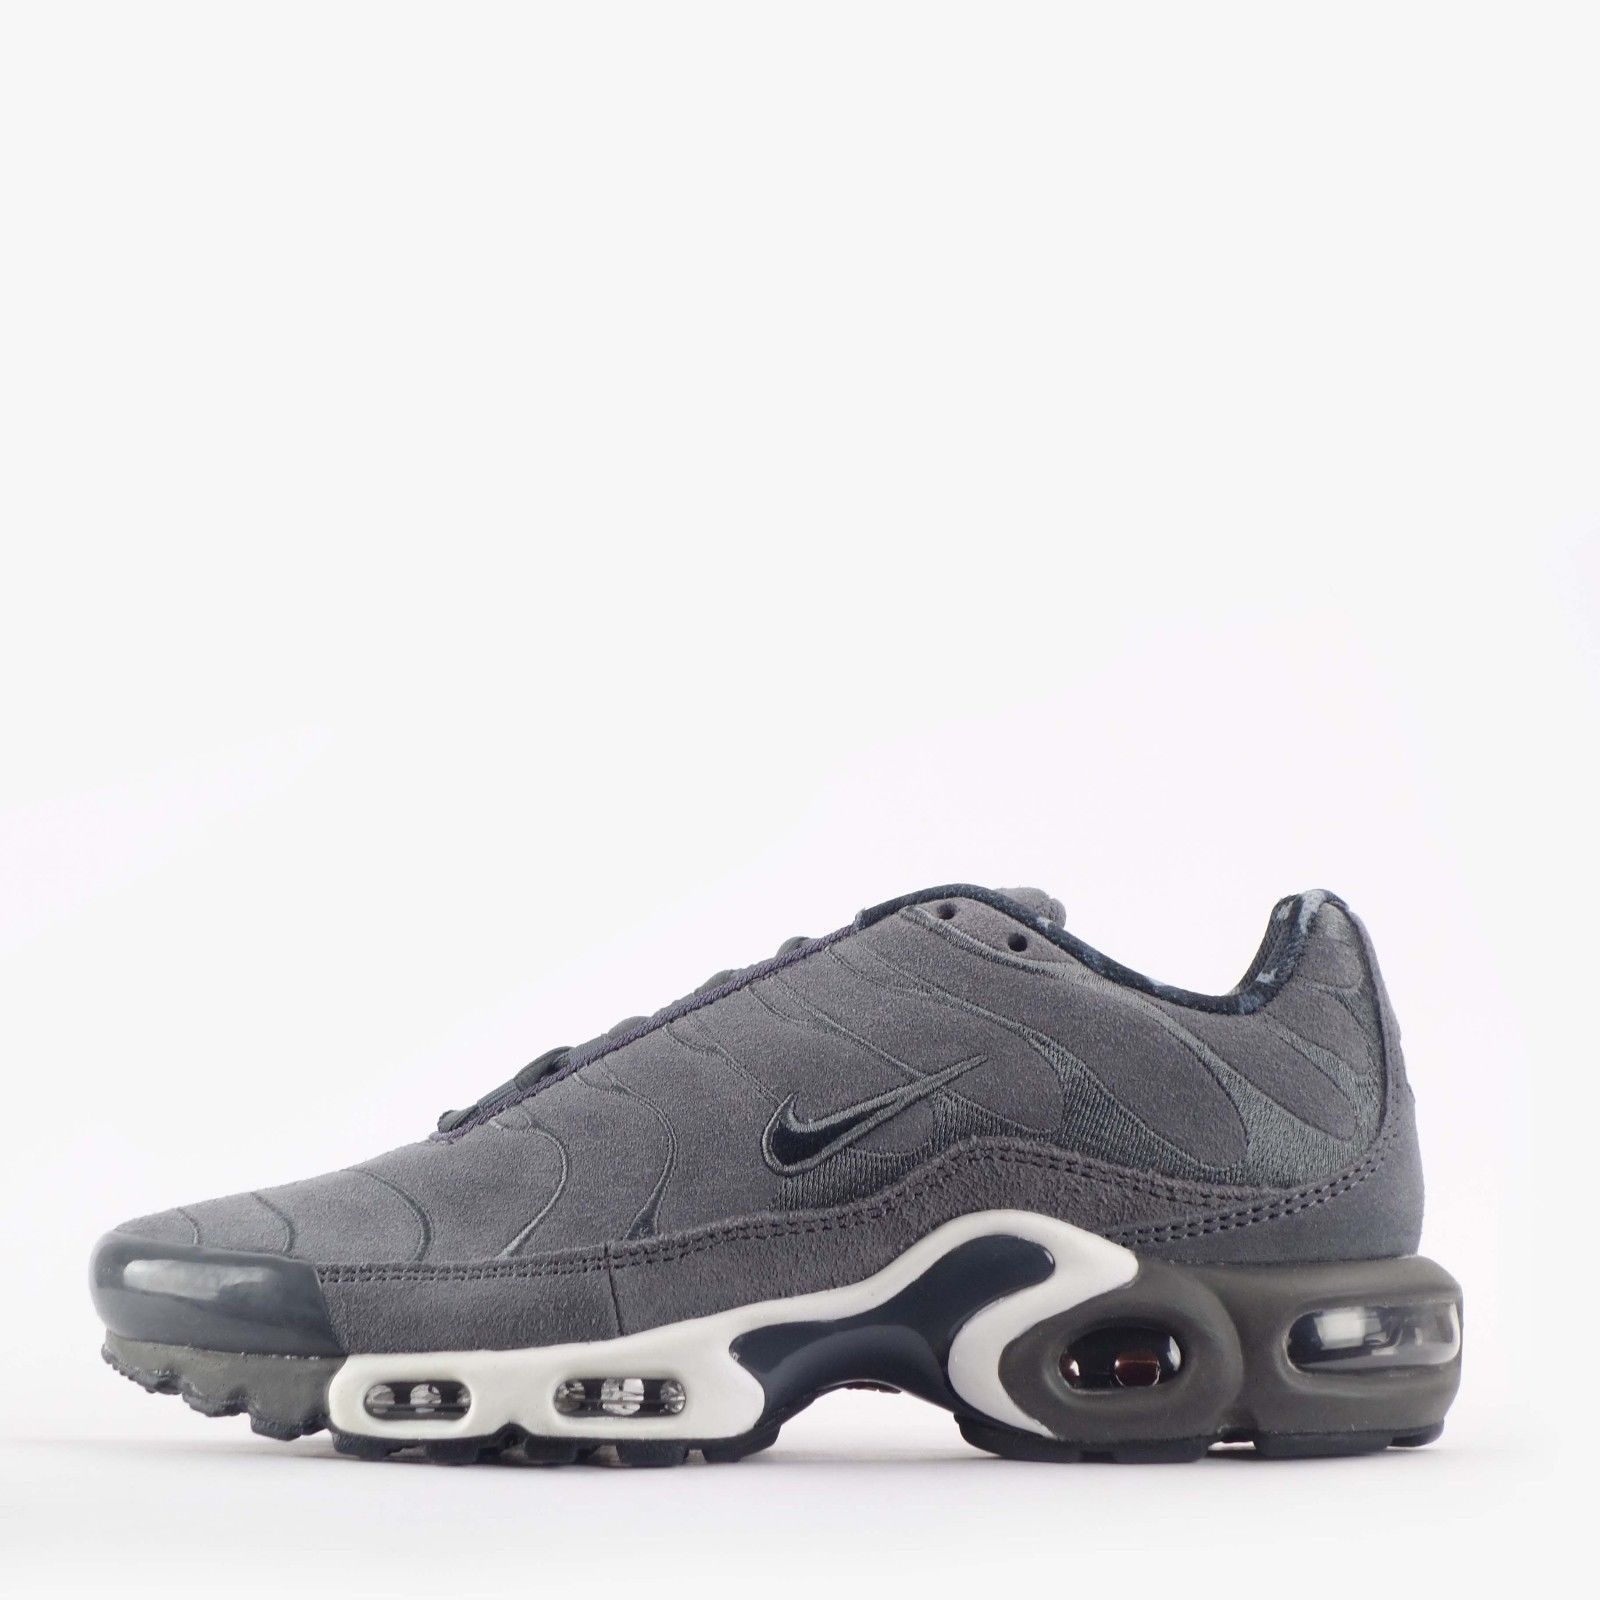 the best attitude 5d832 dc18b Nike Air Max Plus Premium Tuned TN Suede Mens Shoes In Dark Grey in  Clothes, Shoes   Accessories, Men s Shoes, Trainers   eBay